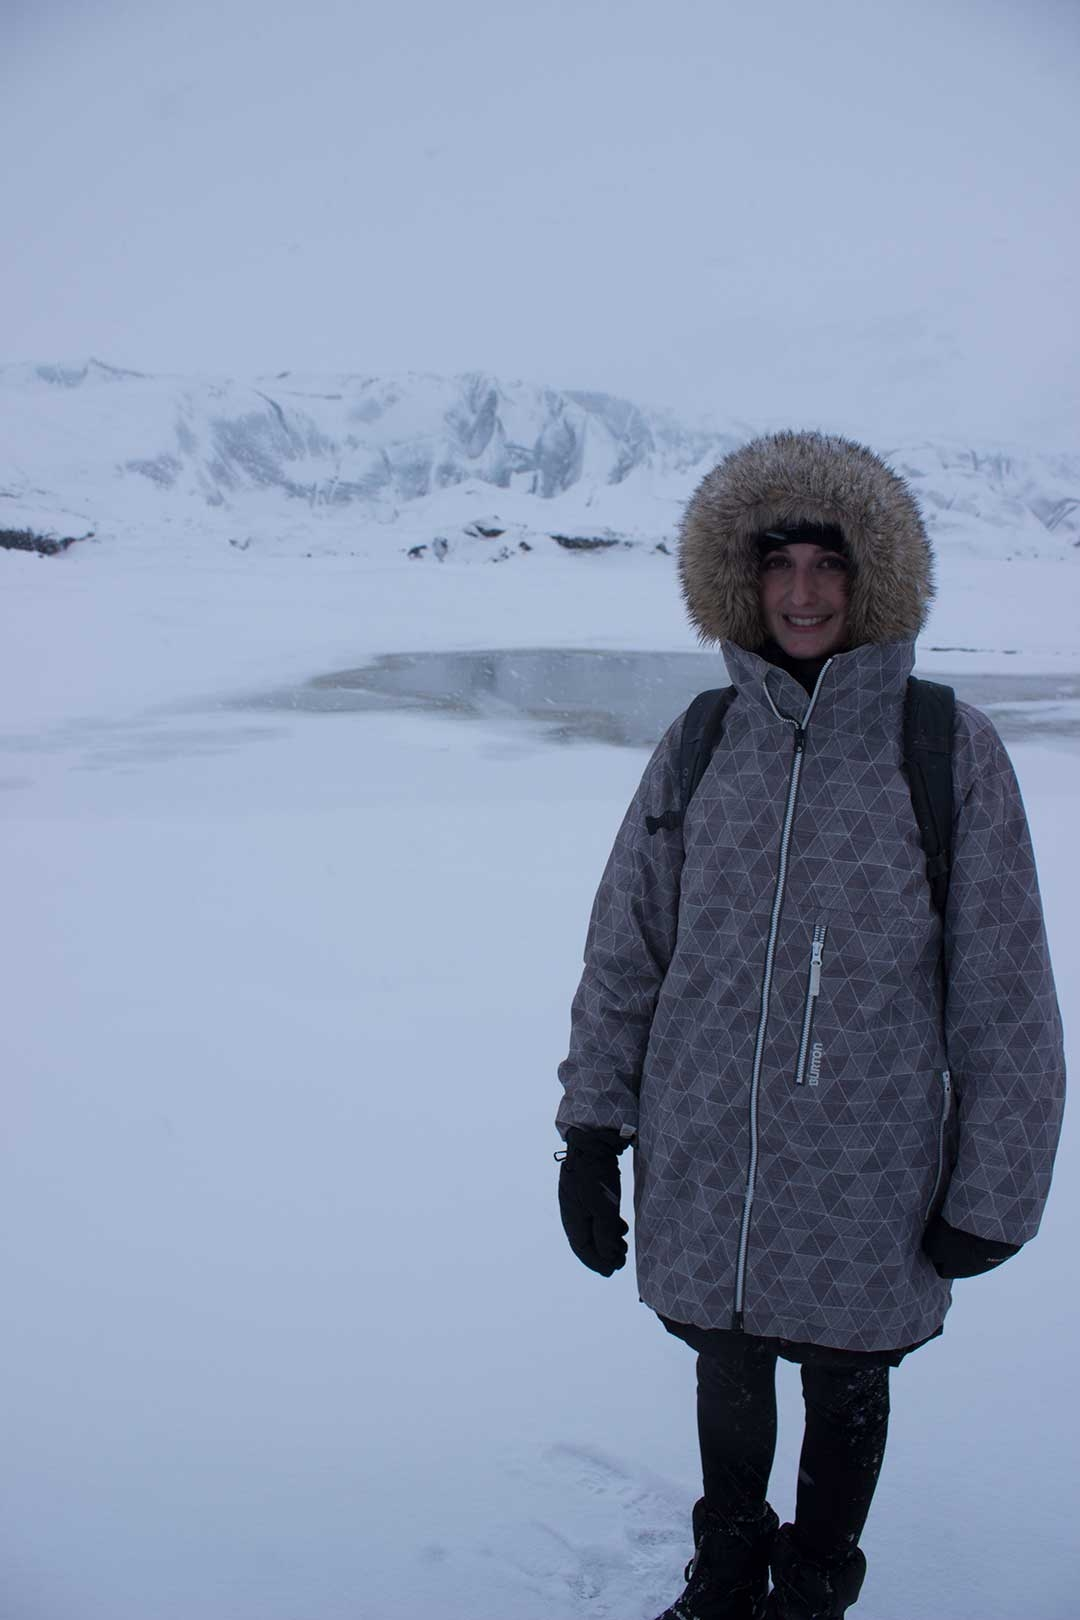 Winter in Iceland wearing a big jacket